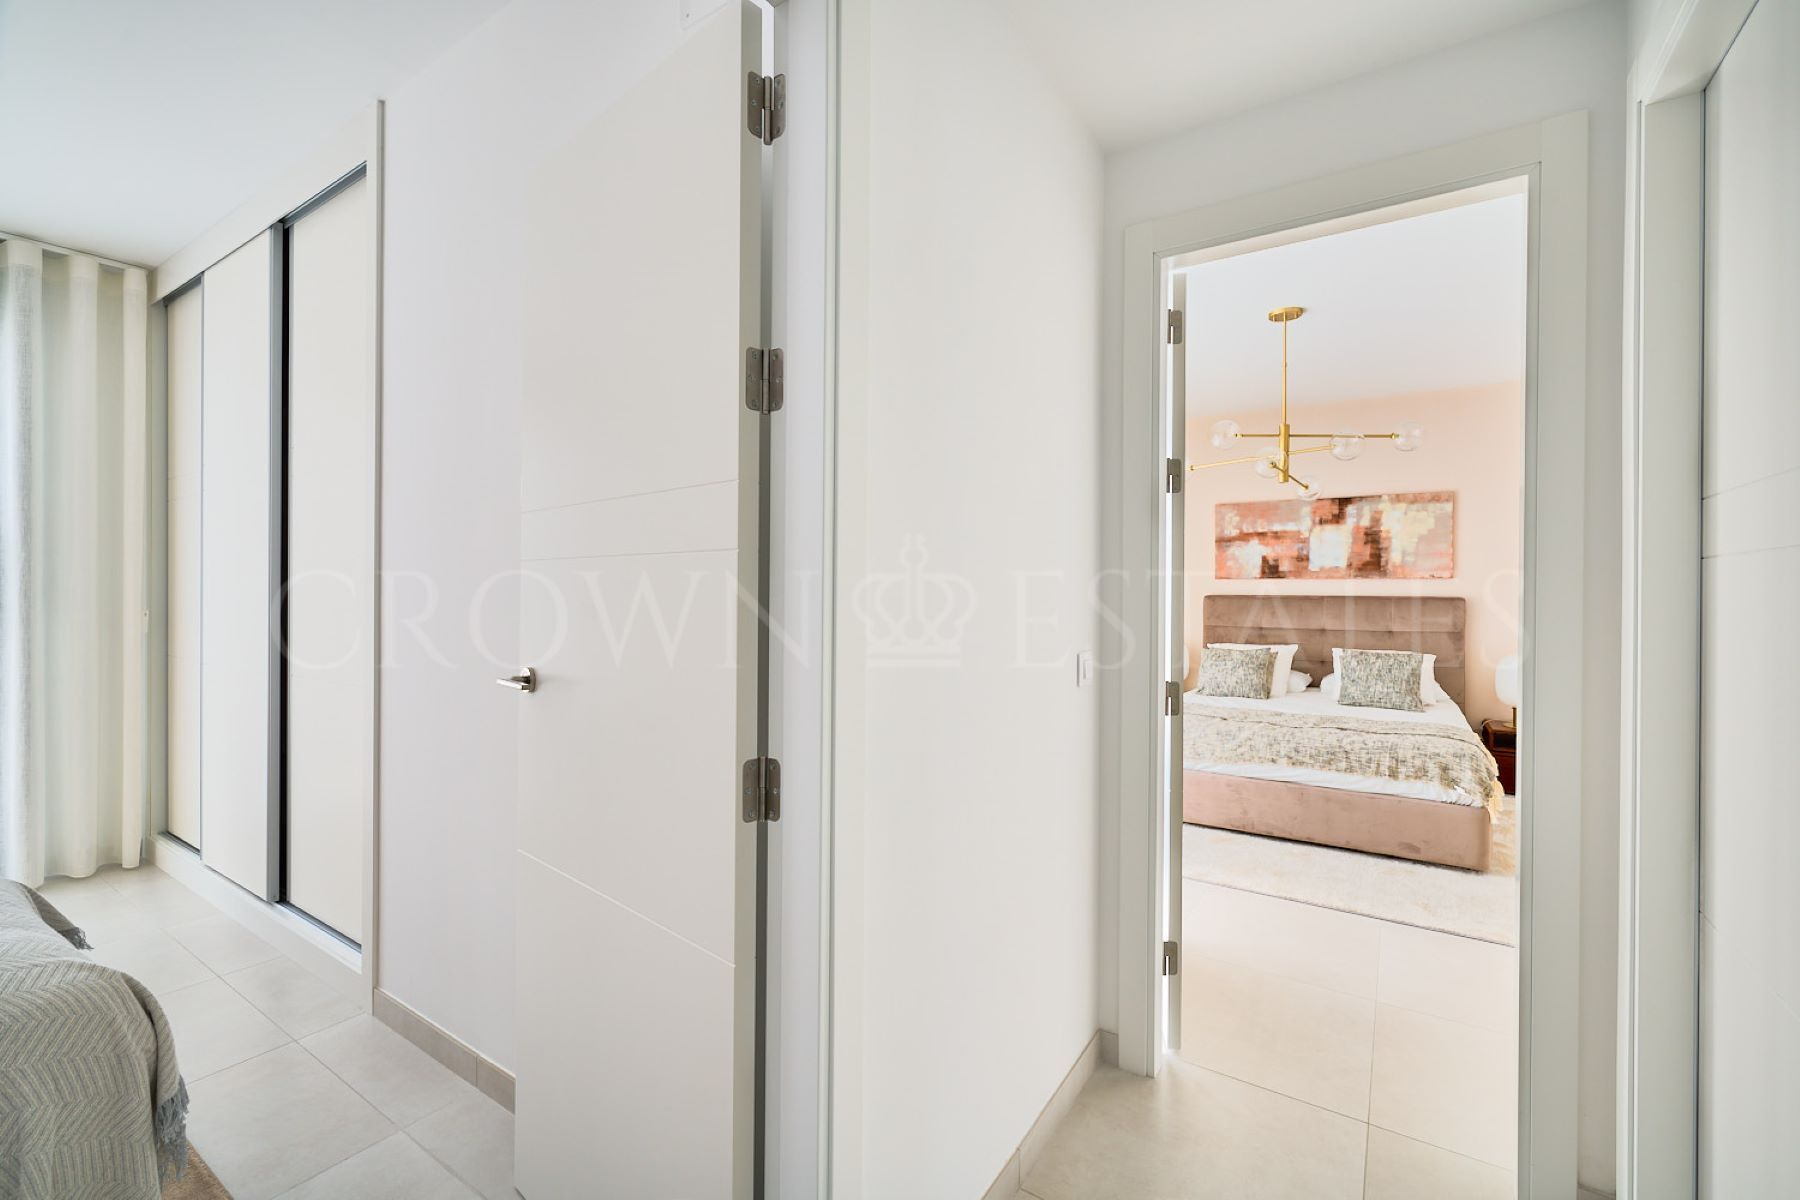 Modern 3 and 4 bedroom townhouses between Marbella and Estepona, in walking distance to the beach and all amenities